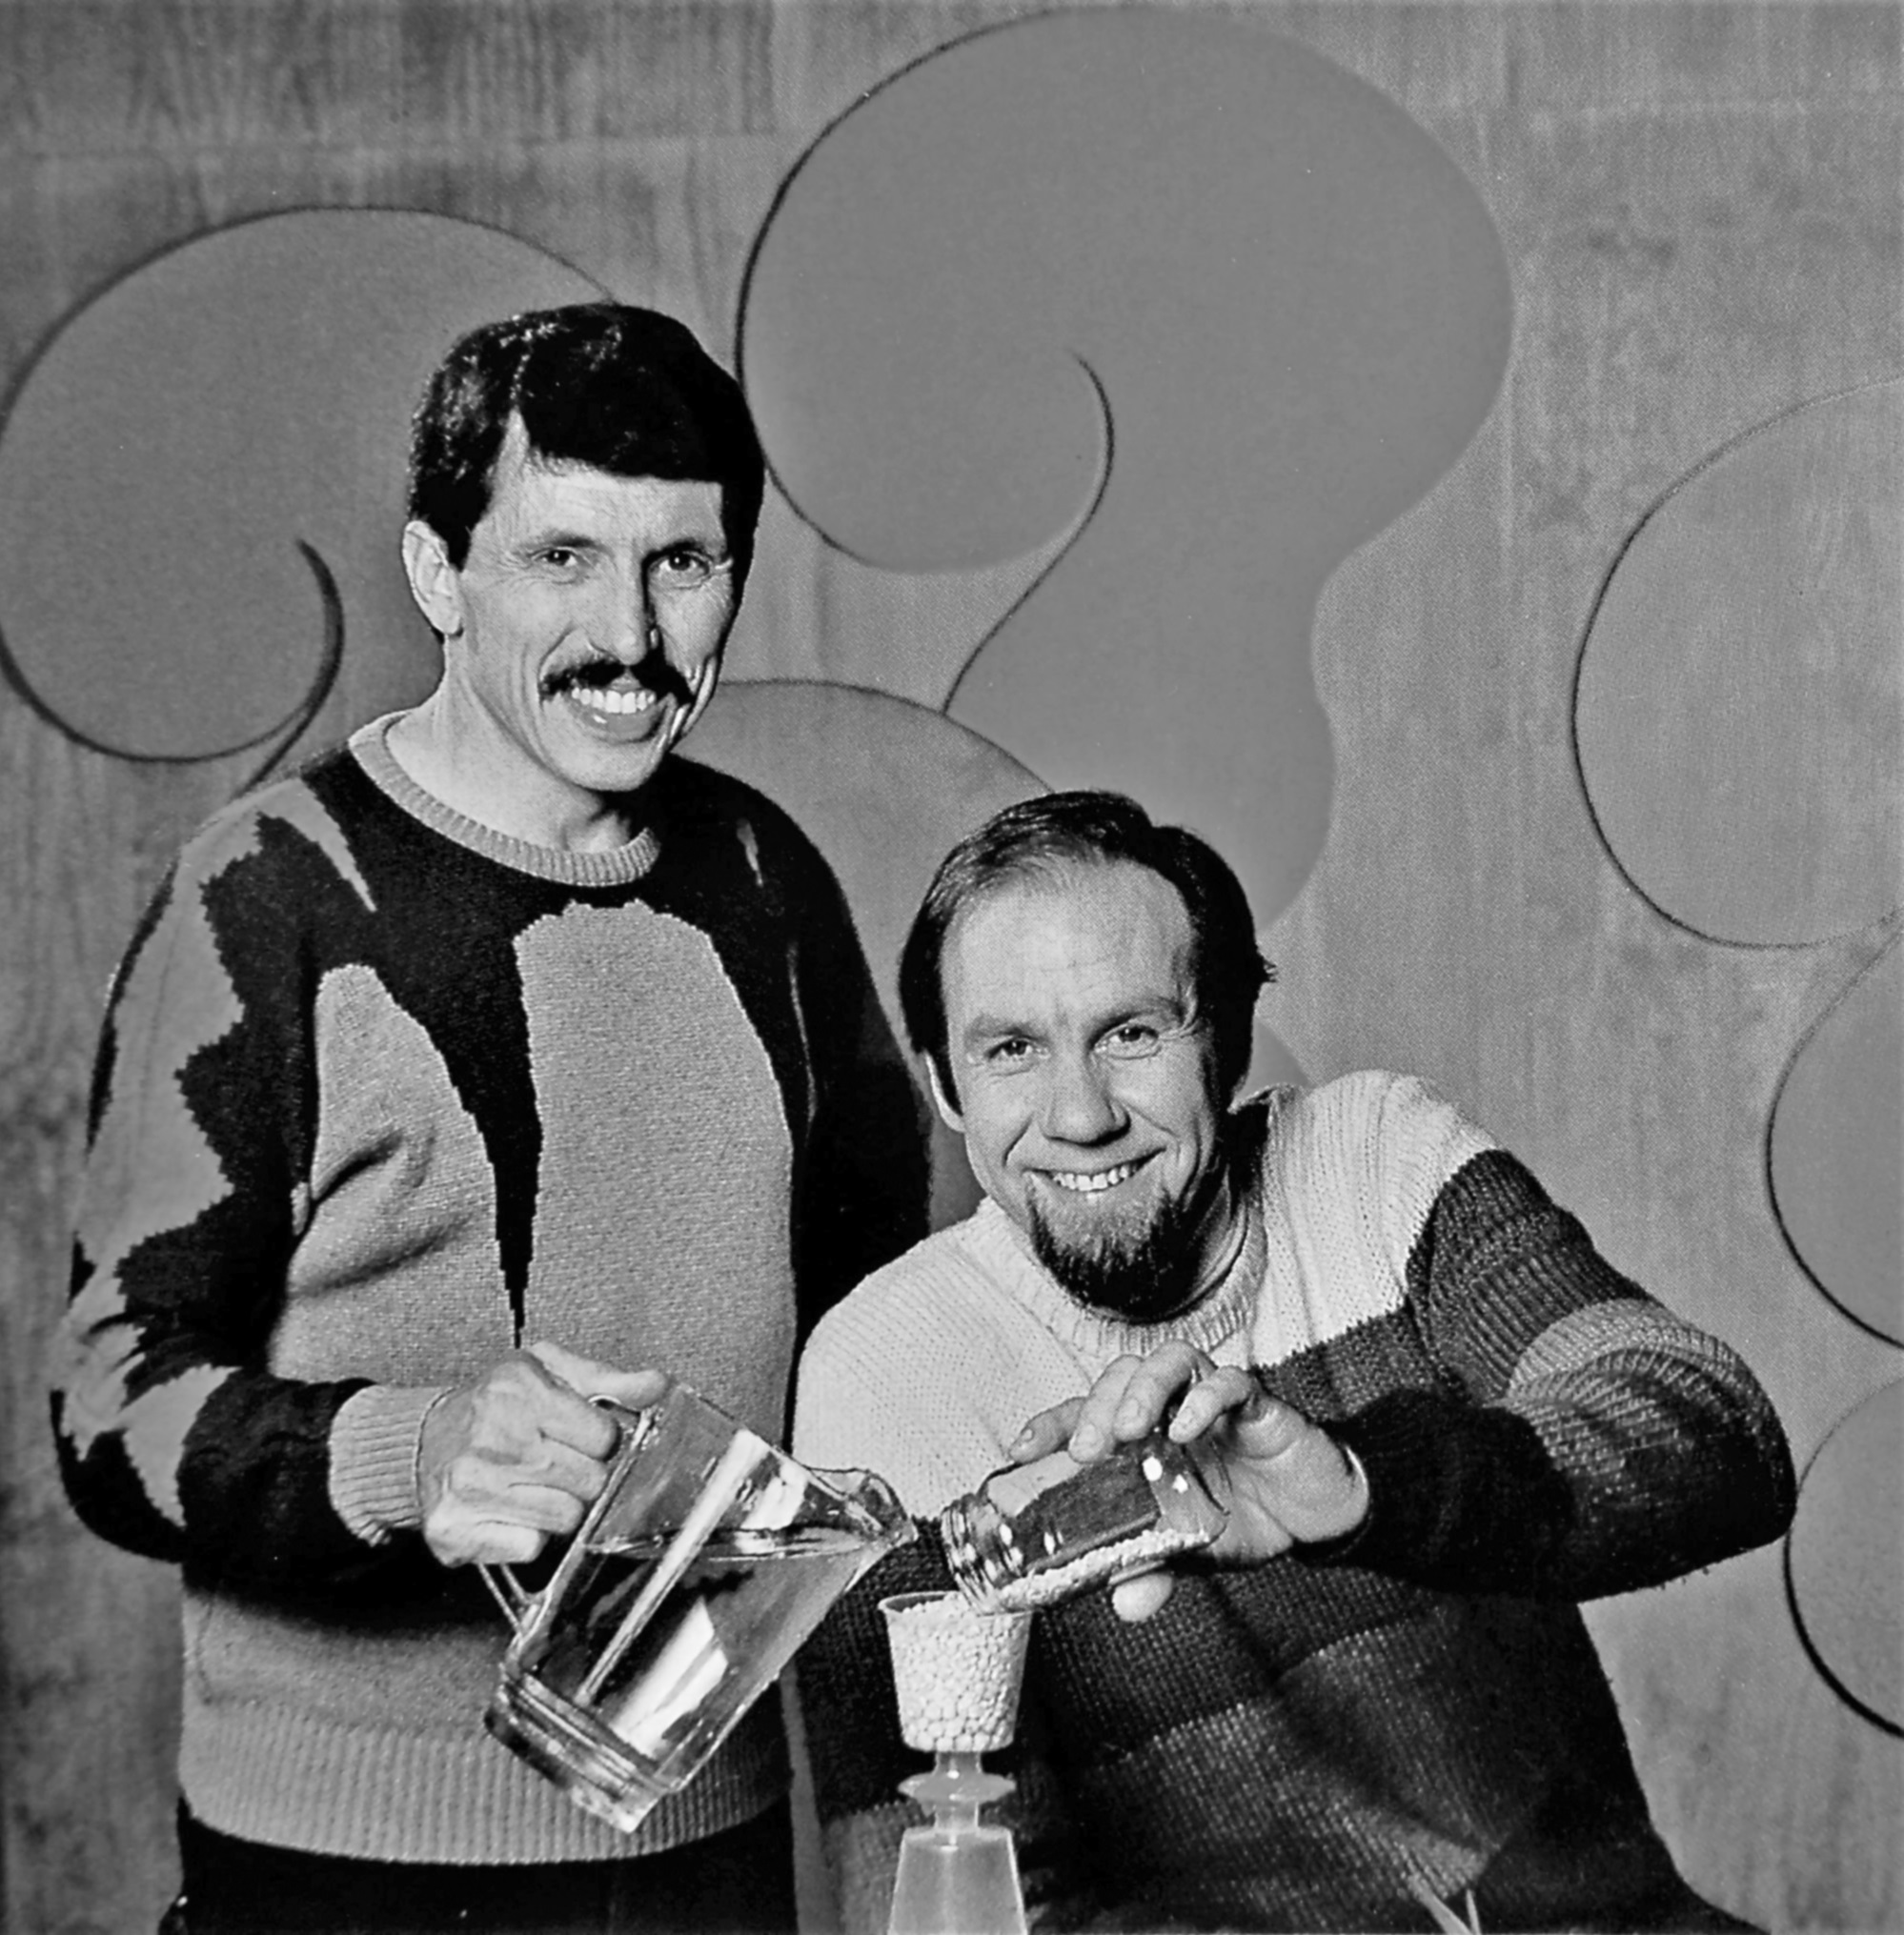 Black and white photograph of Rob Morrison and Dean Hutton from 'The Curiosity Show'